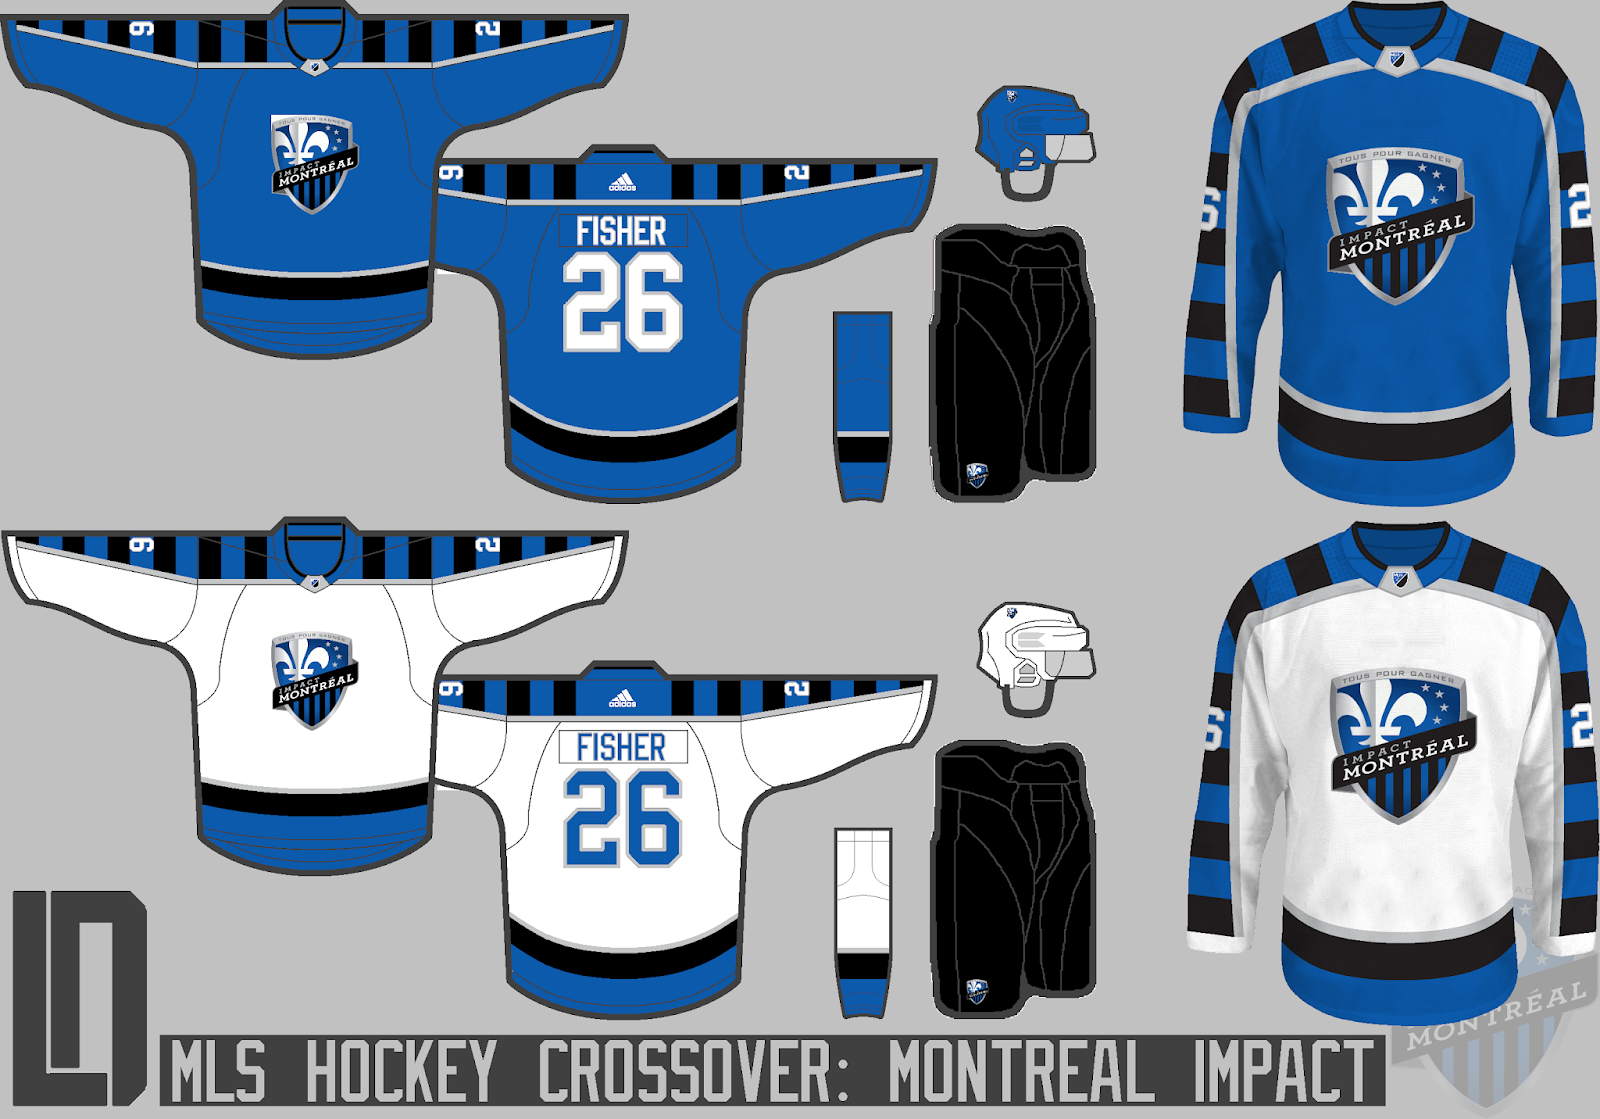 Montreal+Impact+Concept.png